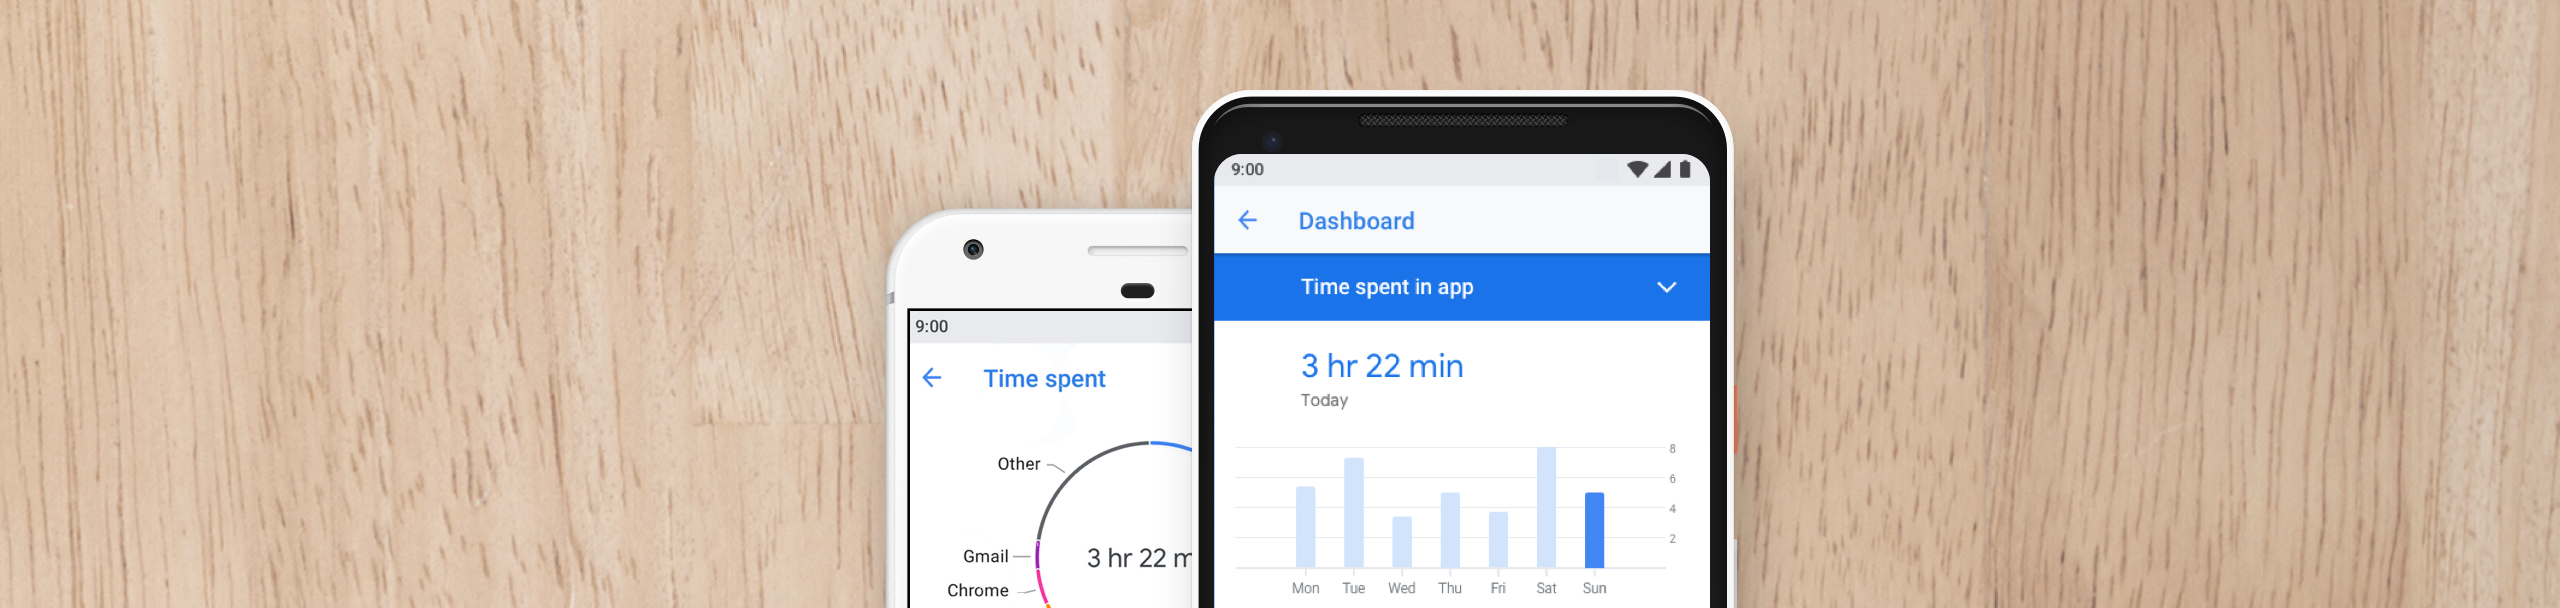 Android 9 Pie Launched: 9 Key Features you must know, Digital Wellbeing and more